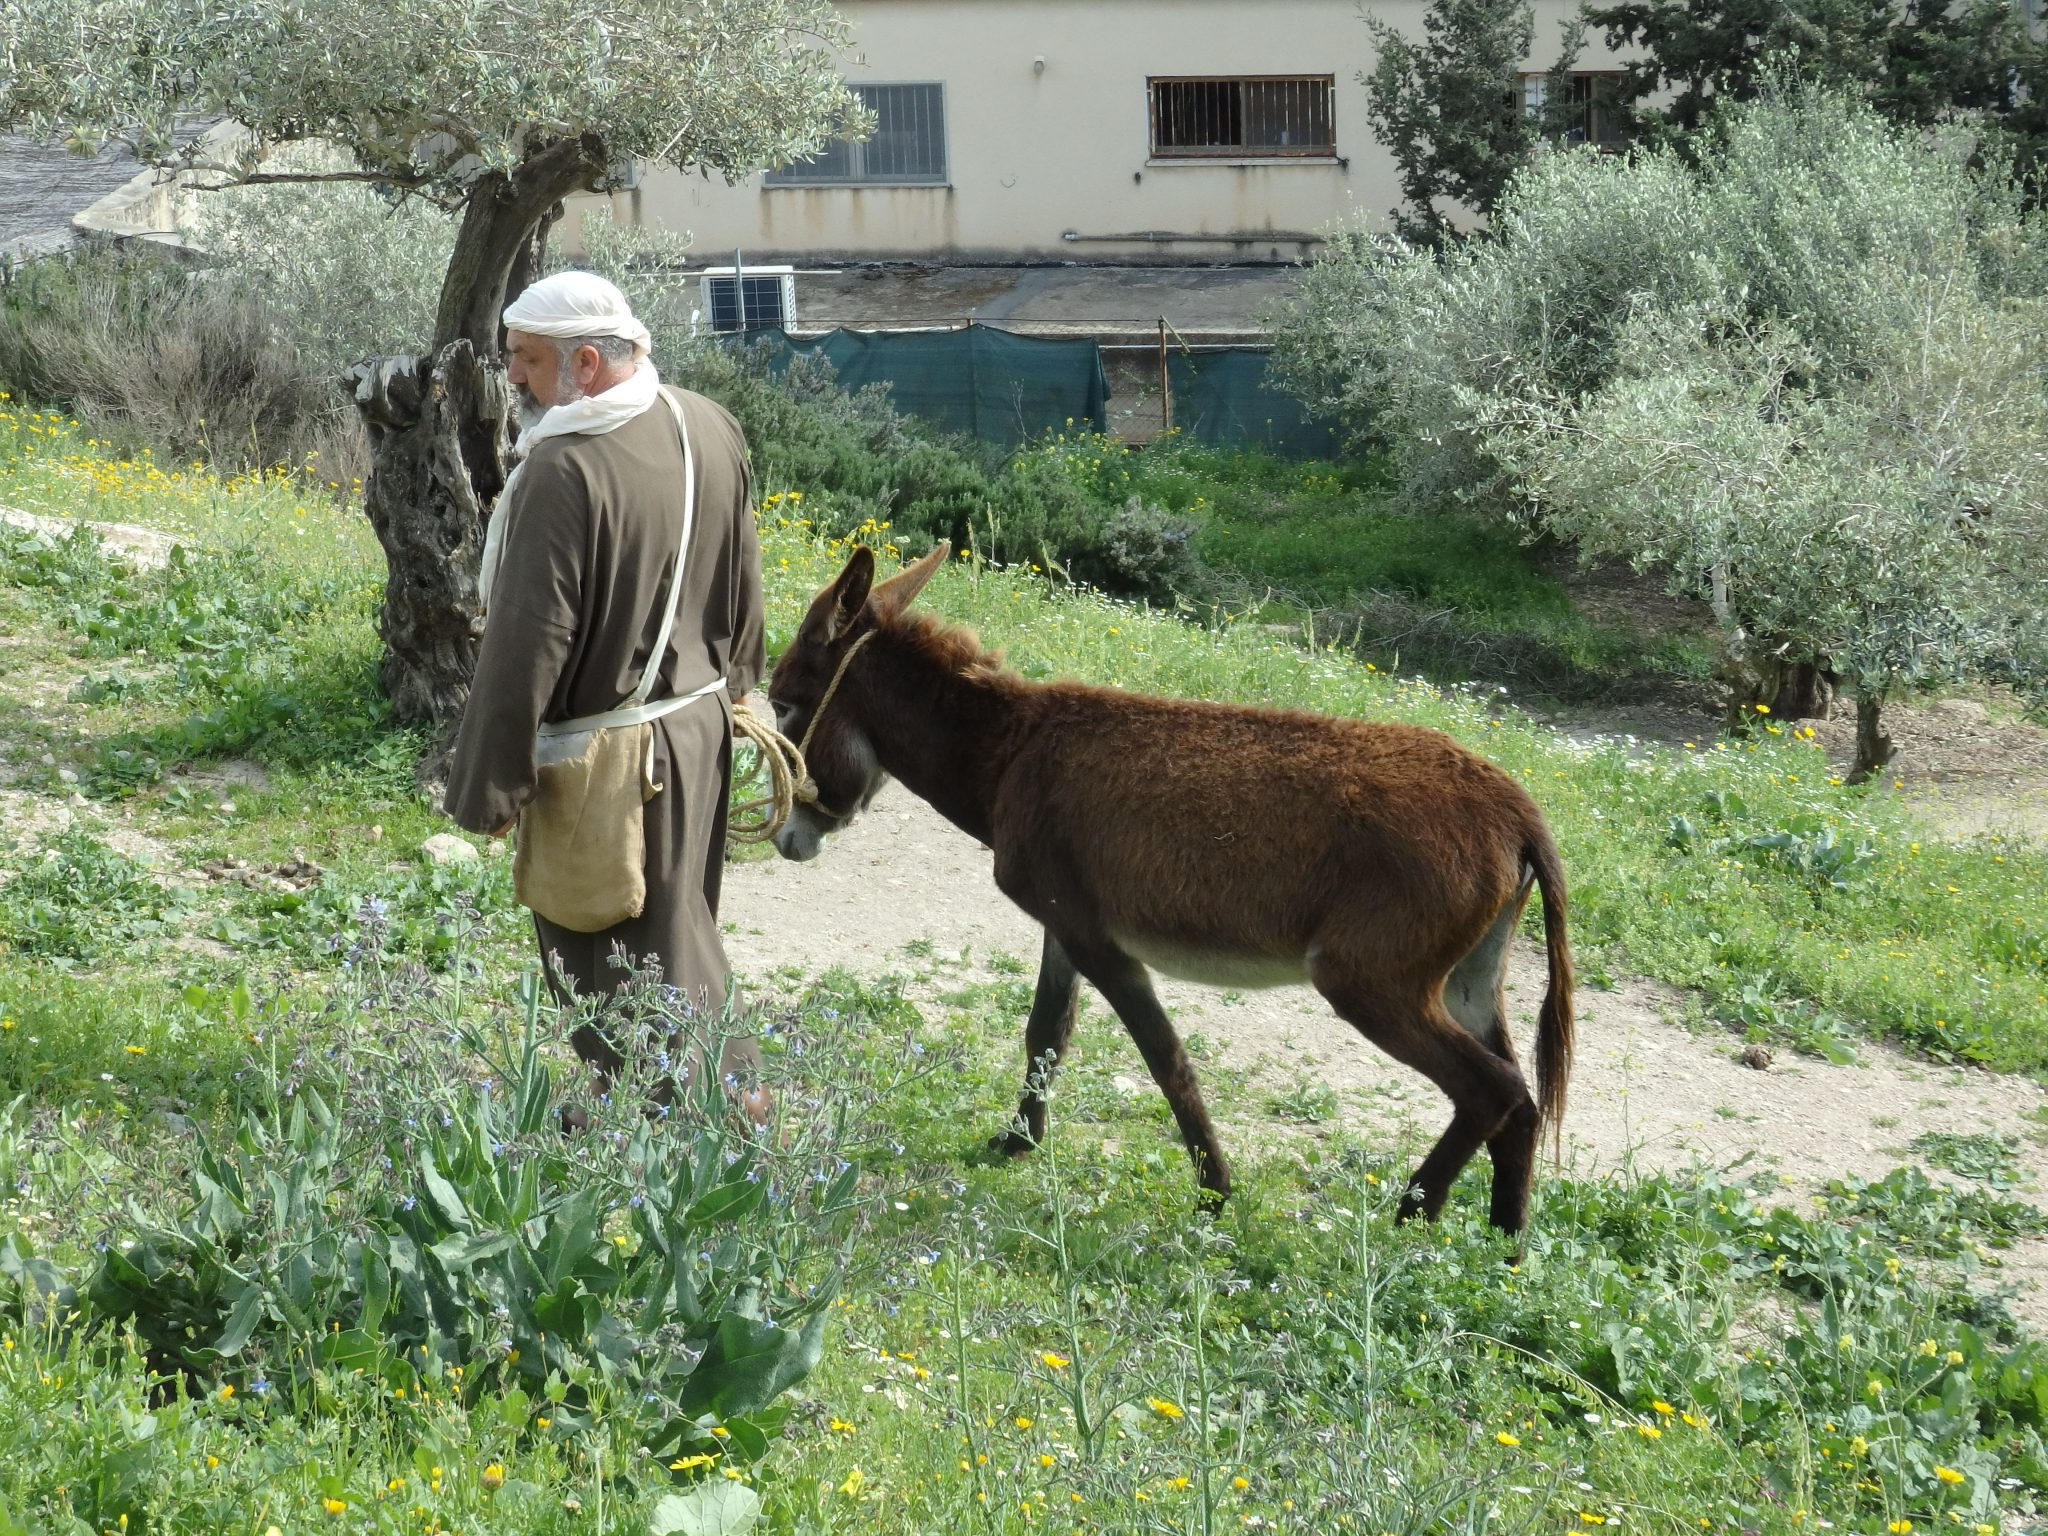 A man leads a donkey in Nazareth Village: Biblical Nazareth